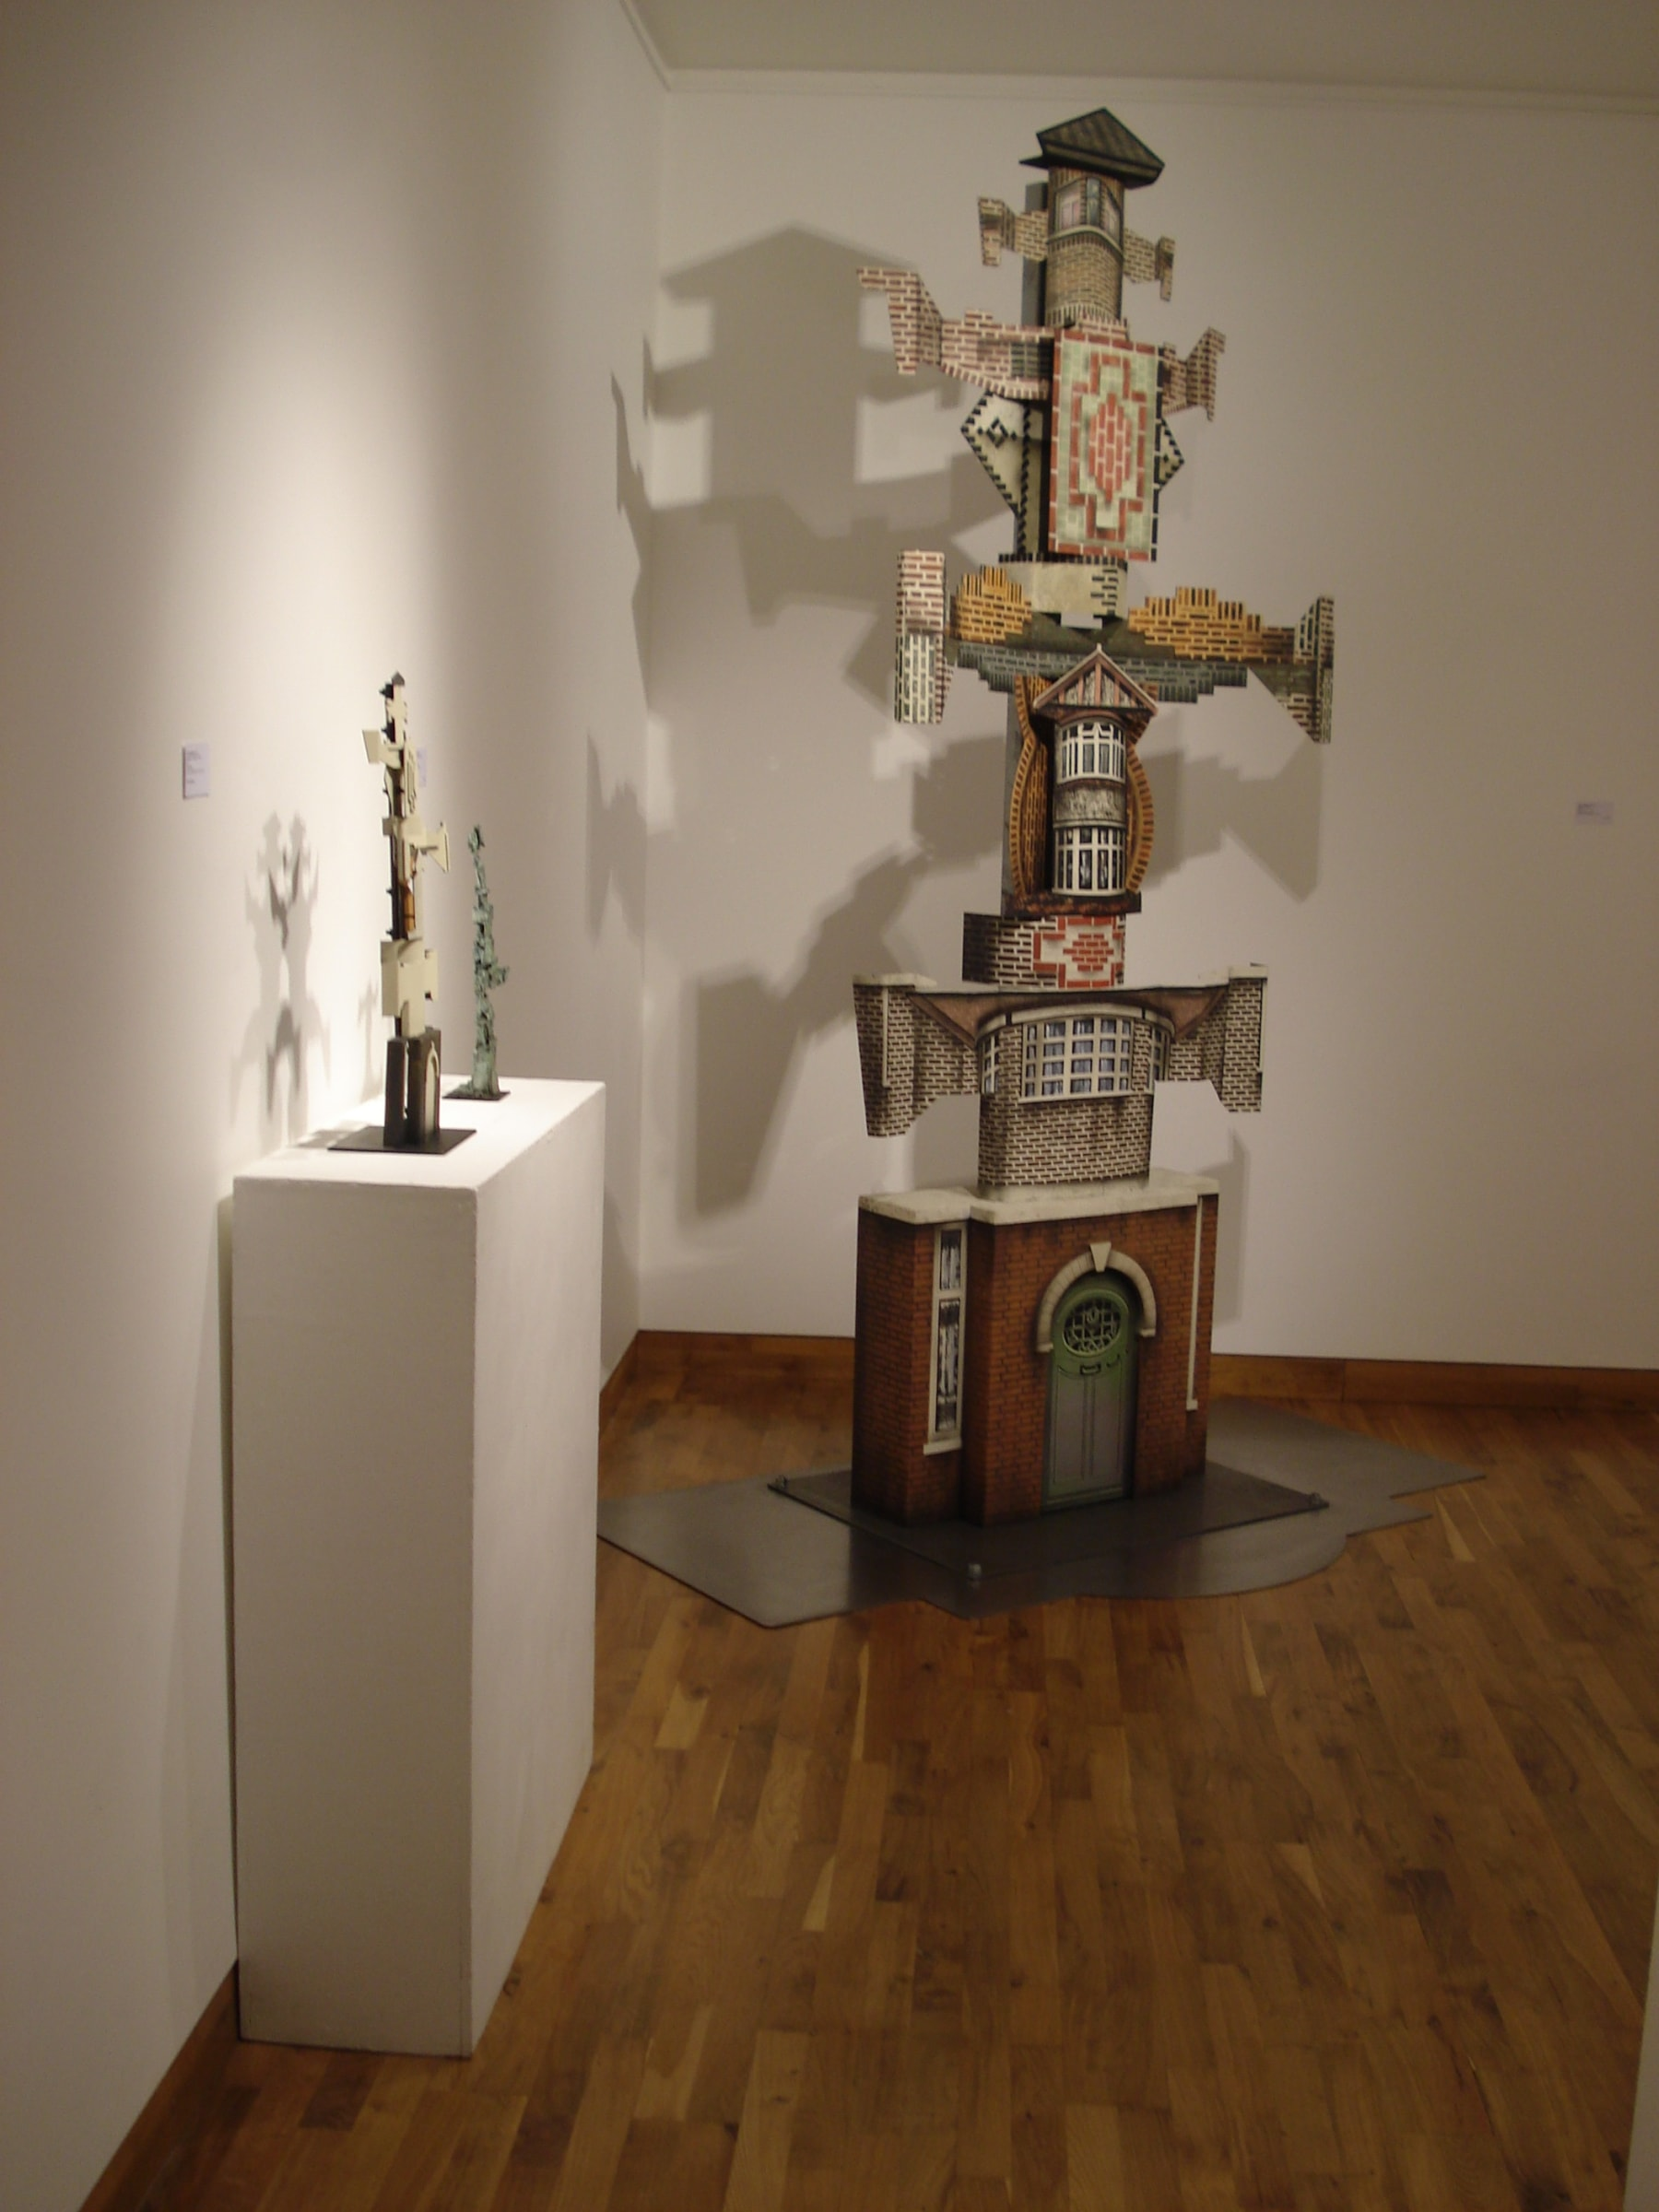 "<span class=""link fancybox-details-link""><a href=""/exhibitions/103/works/image_standalone402/"">View Detail Page</a></span><p>IVOR ABRAHAMS RA 